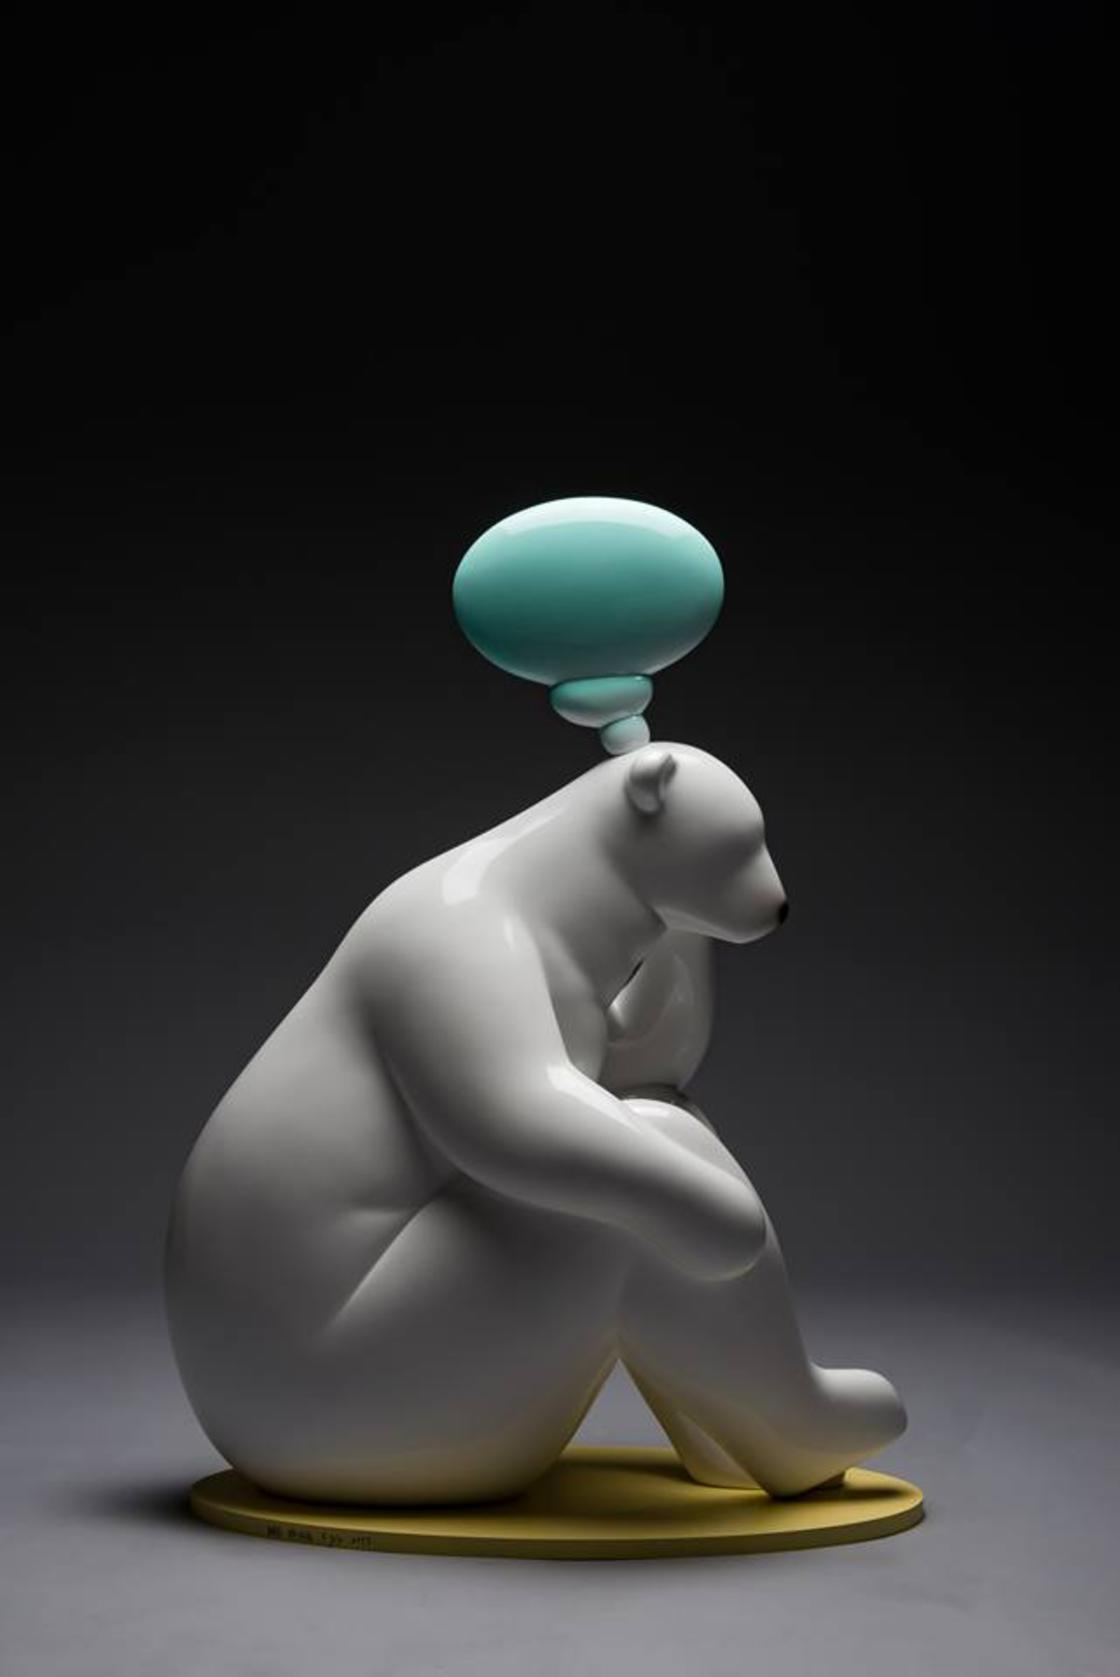 The soft and poetic sculptures of Byun Dae-Yong